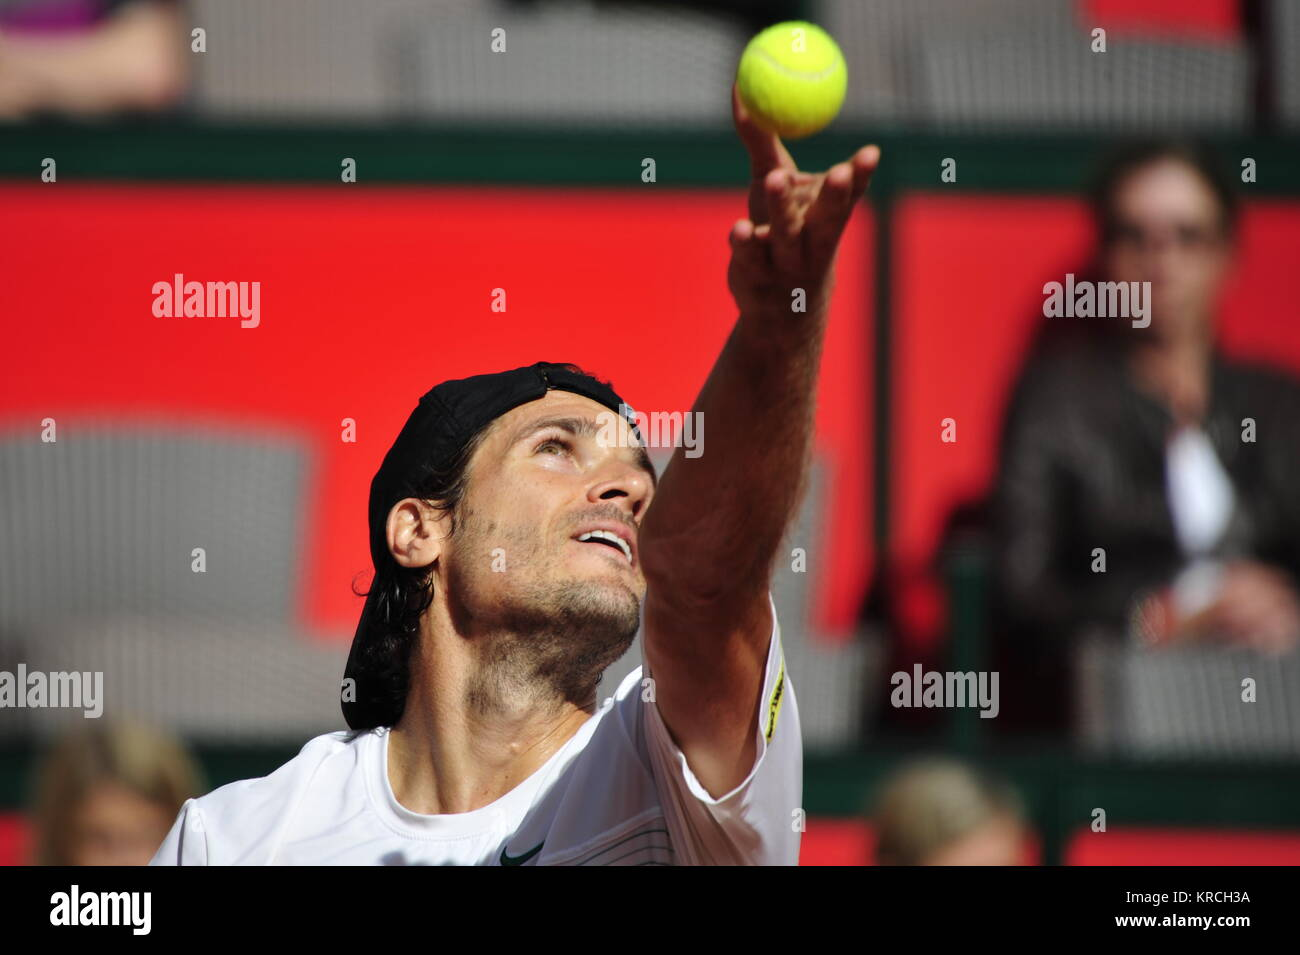 Ml Tommy Haas, German Open, Hamburg, Deutschland Stockbild